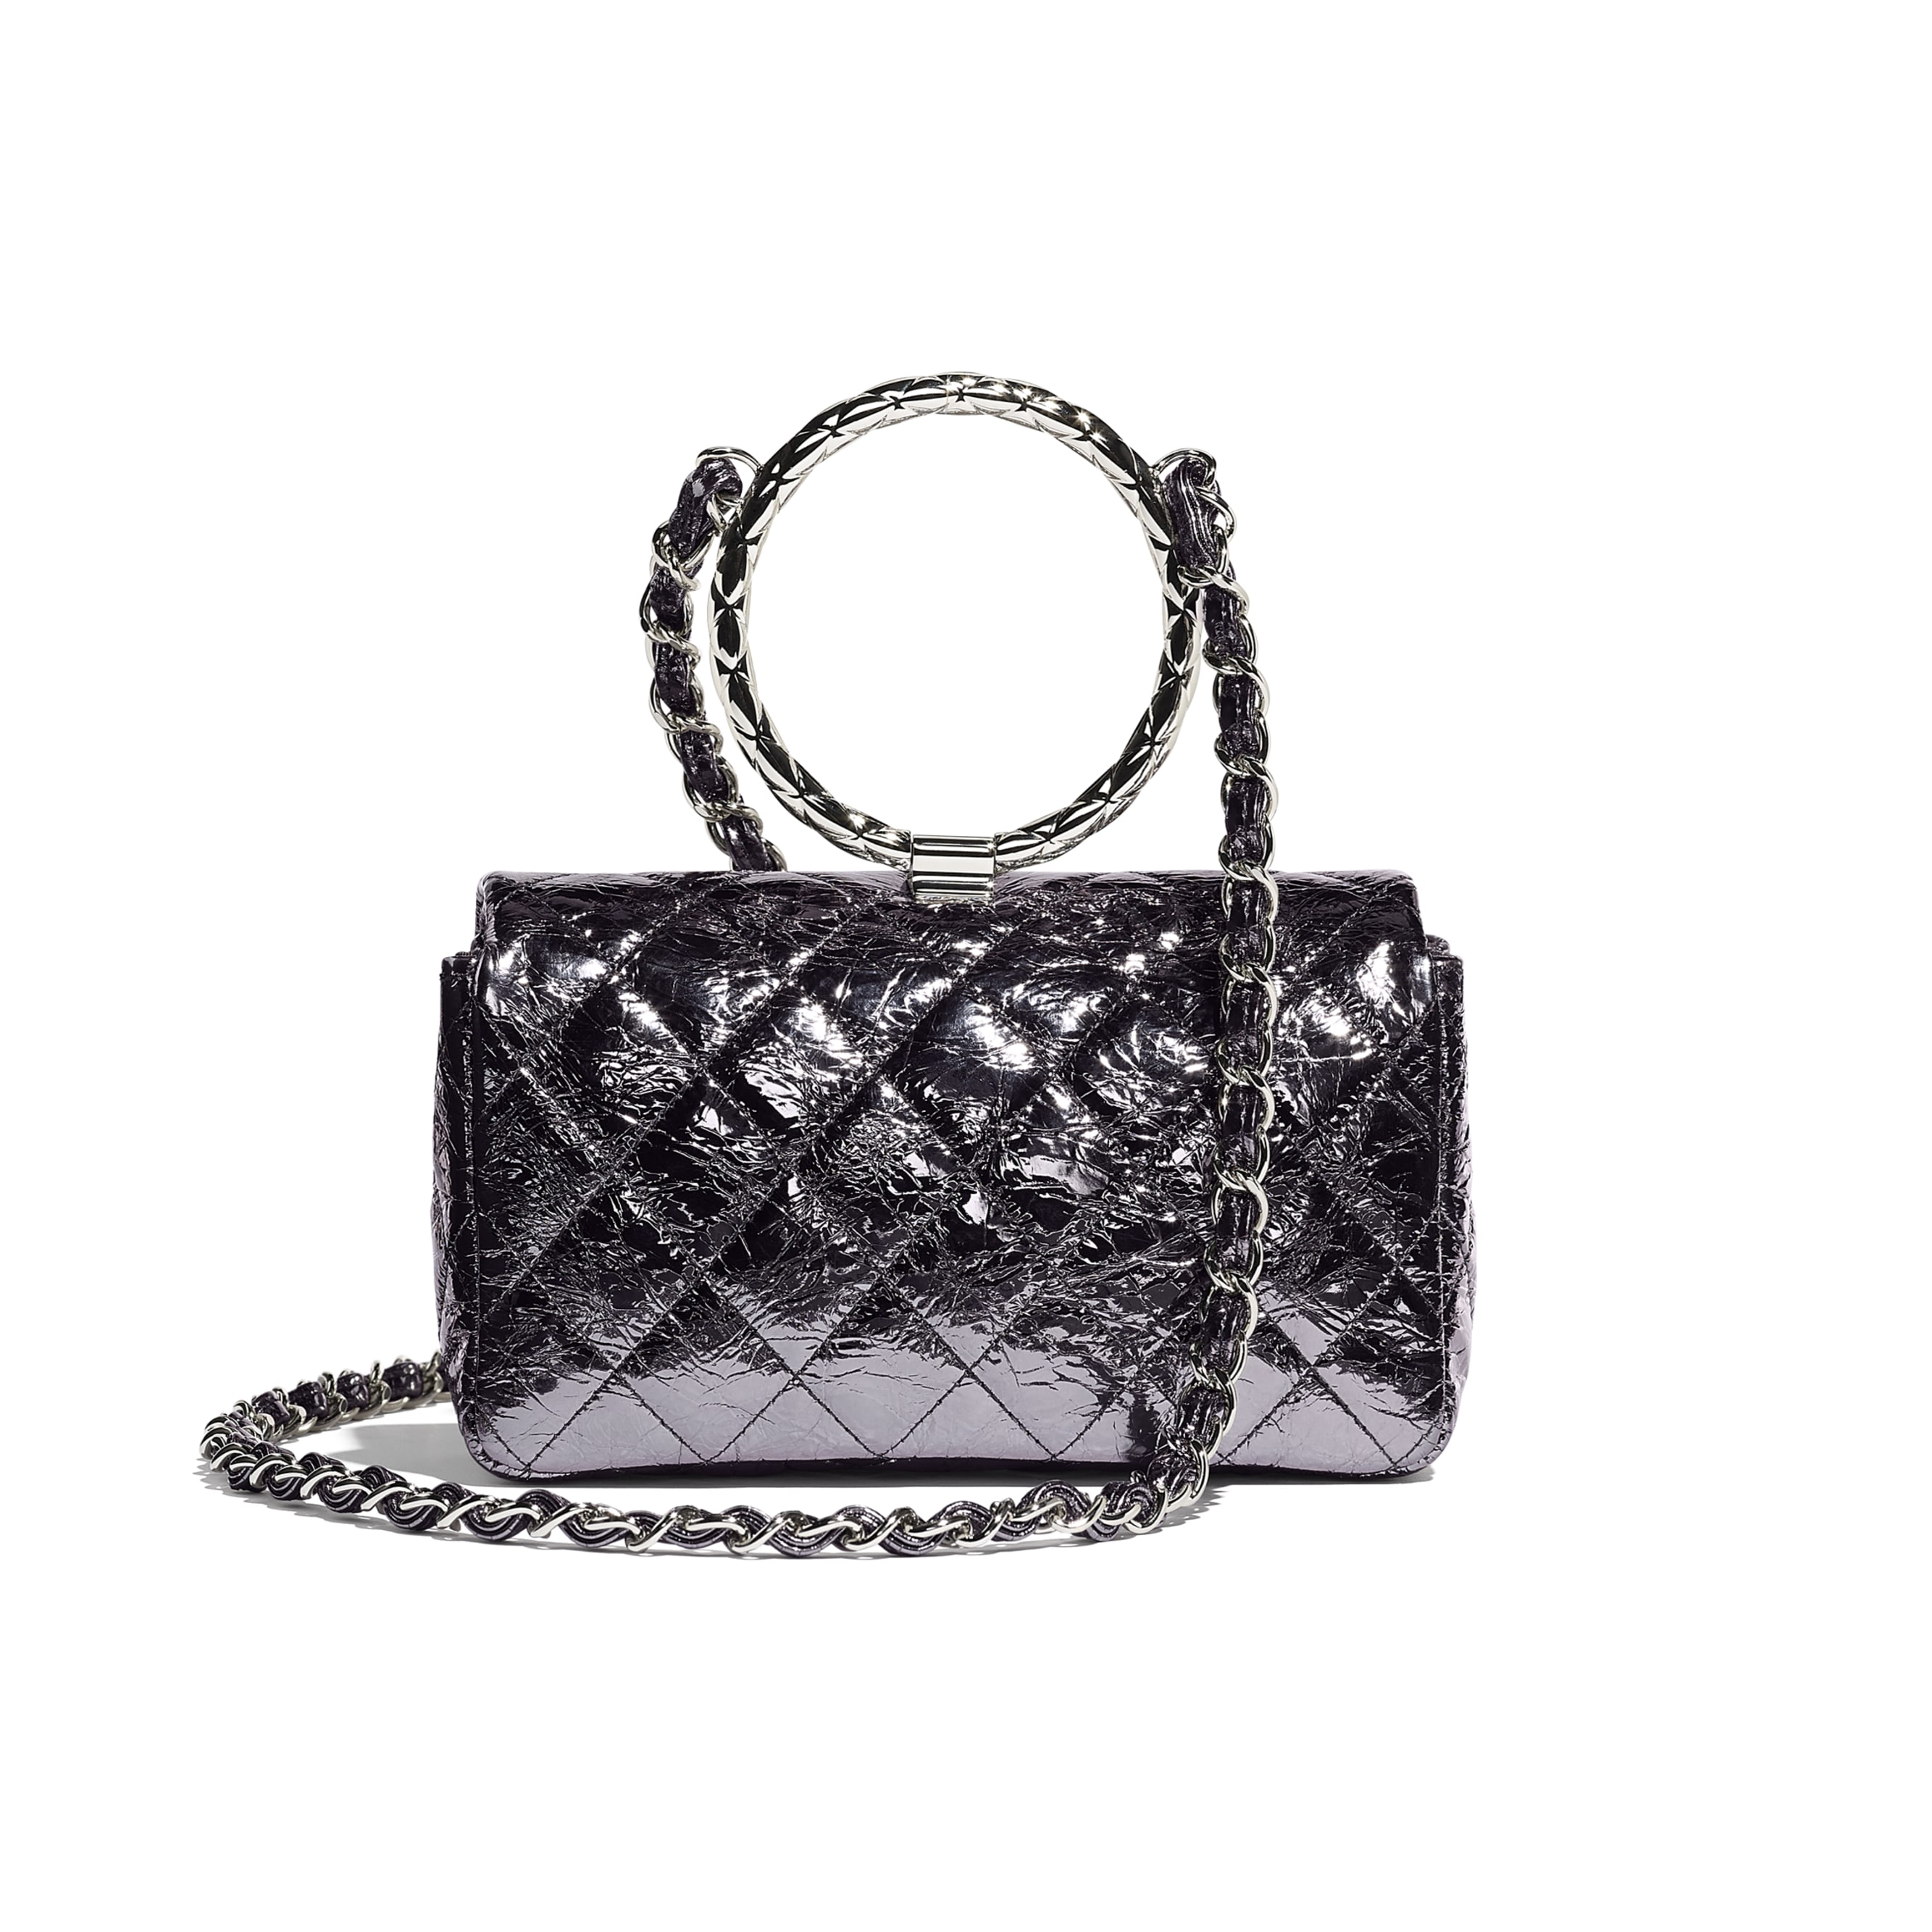 Flap Bag With Top Handle - Charcoal - Metallic Crackled Calfskin & Silver-Tone Metal - Alternative view - see standard sized version